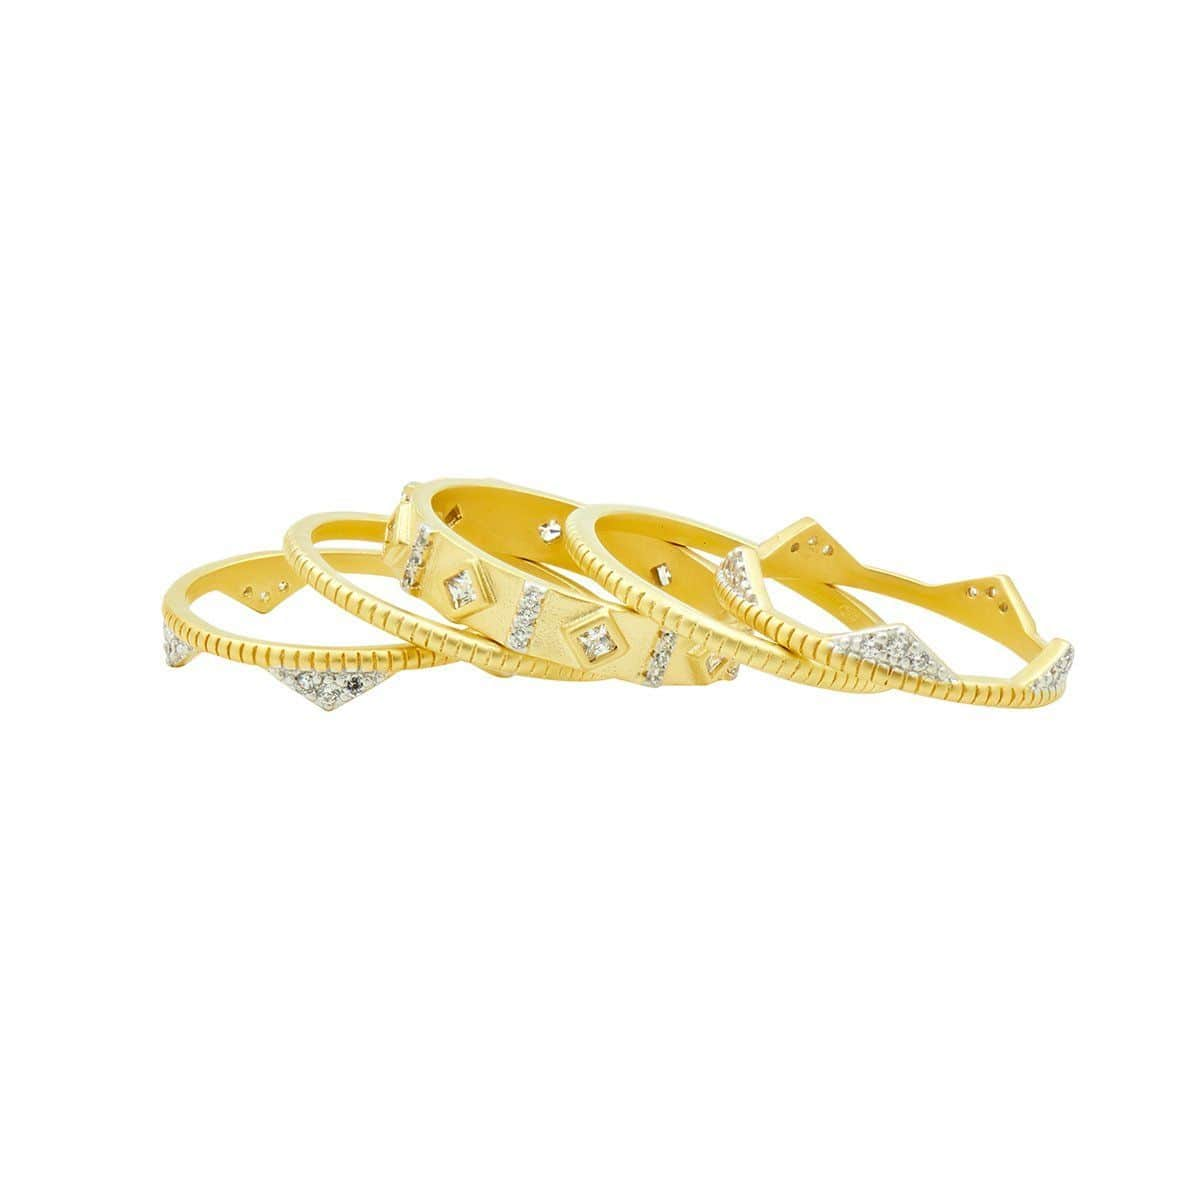 Visionary Fusion Crown Stack (Set of 5) Rings - VFPYZR01